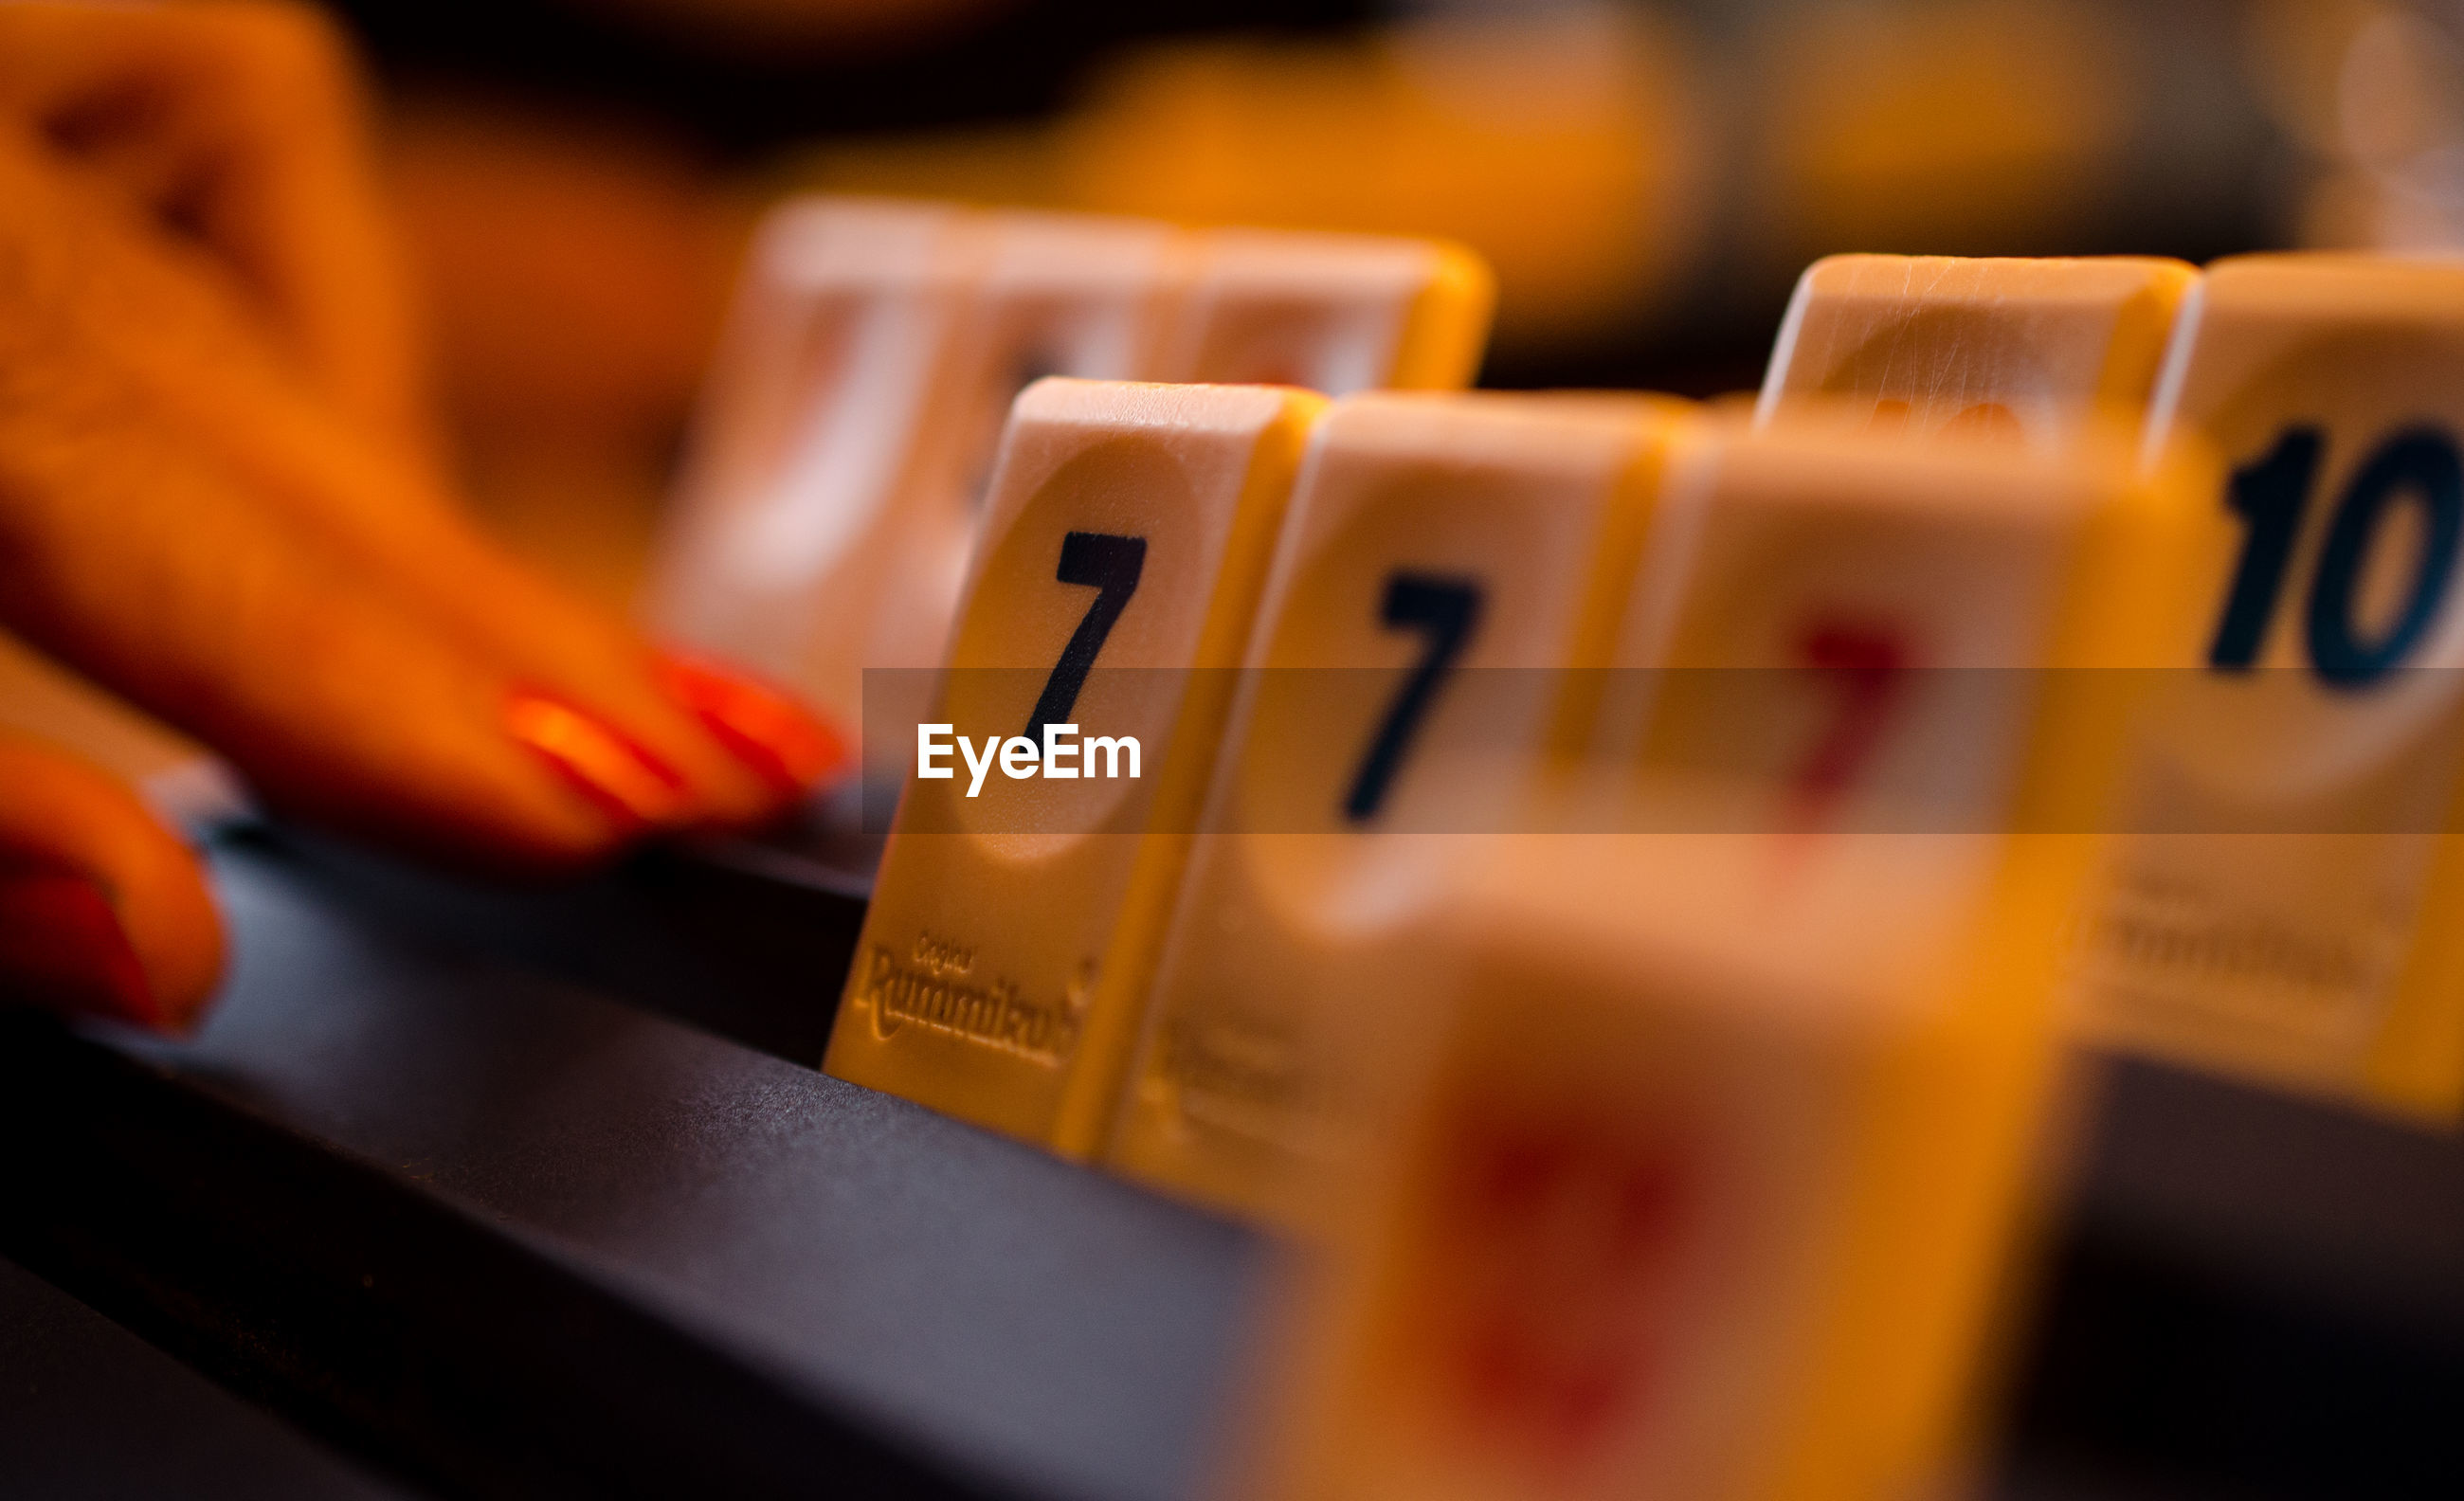 Cropped image of finger by rummikub